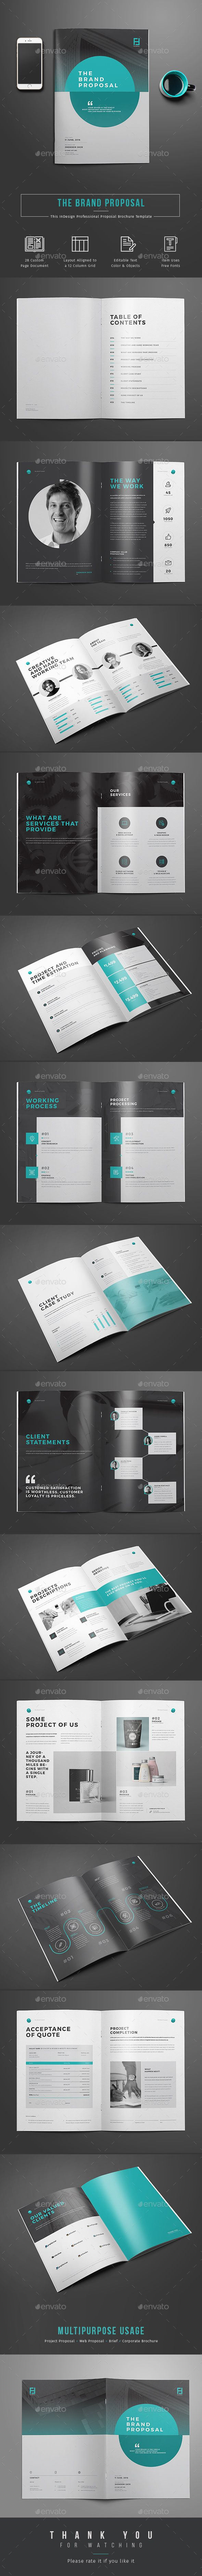 Proposal Template InDesign INDD. Download here: http://graphicriver.net/item/proposal/16449617?ref=ksioks